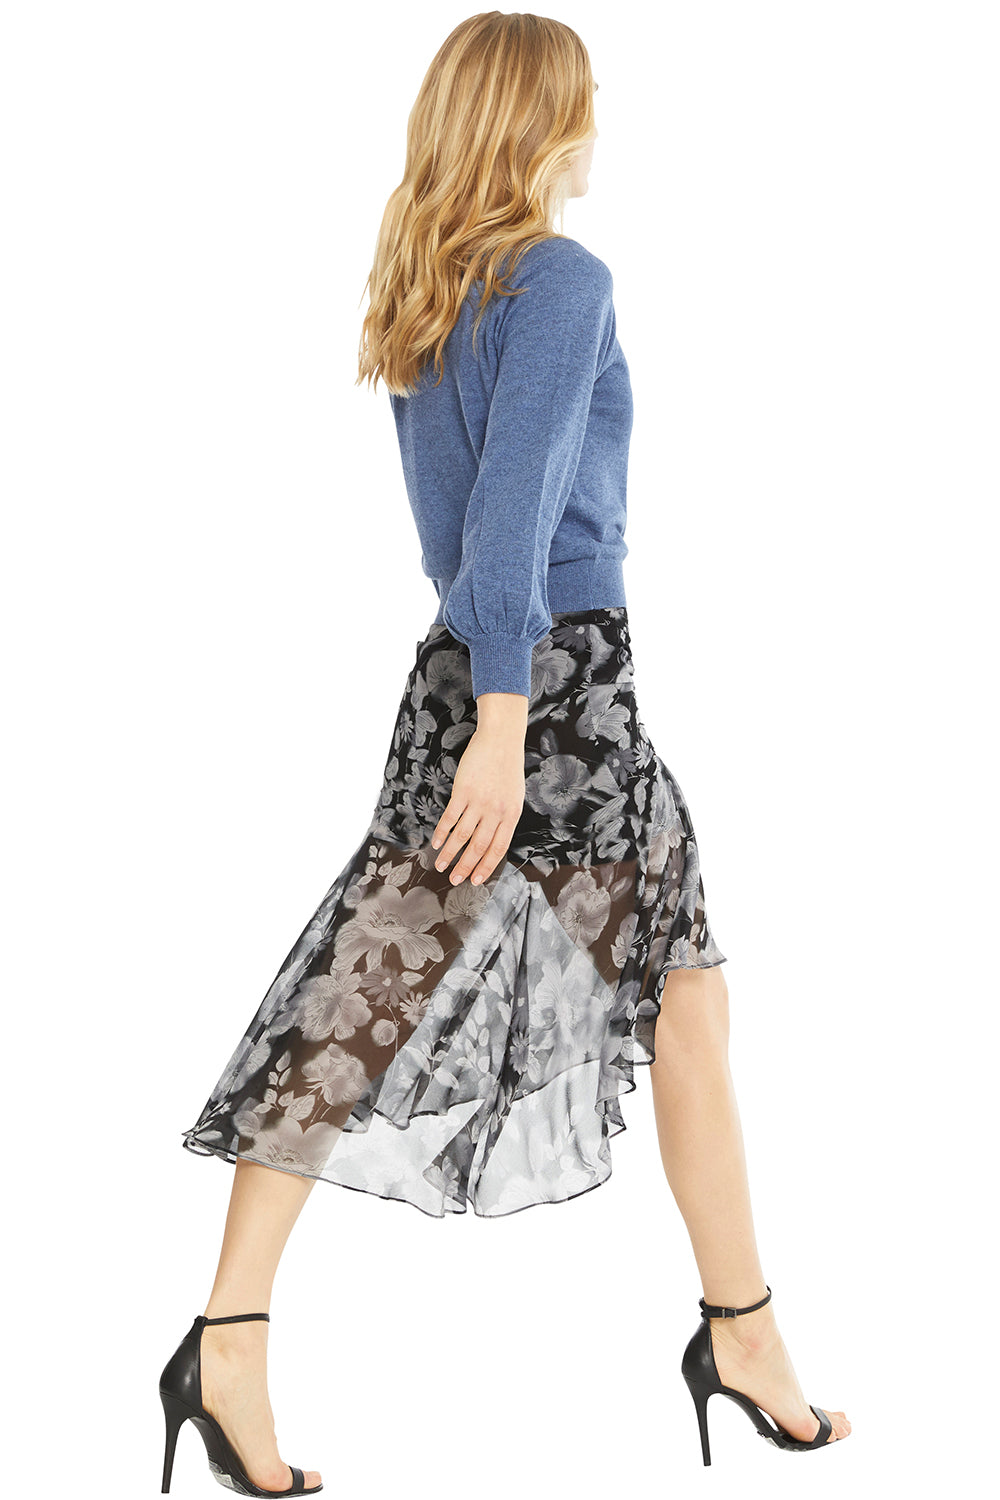 FIONA SKIRT - MISA Los Angeles